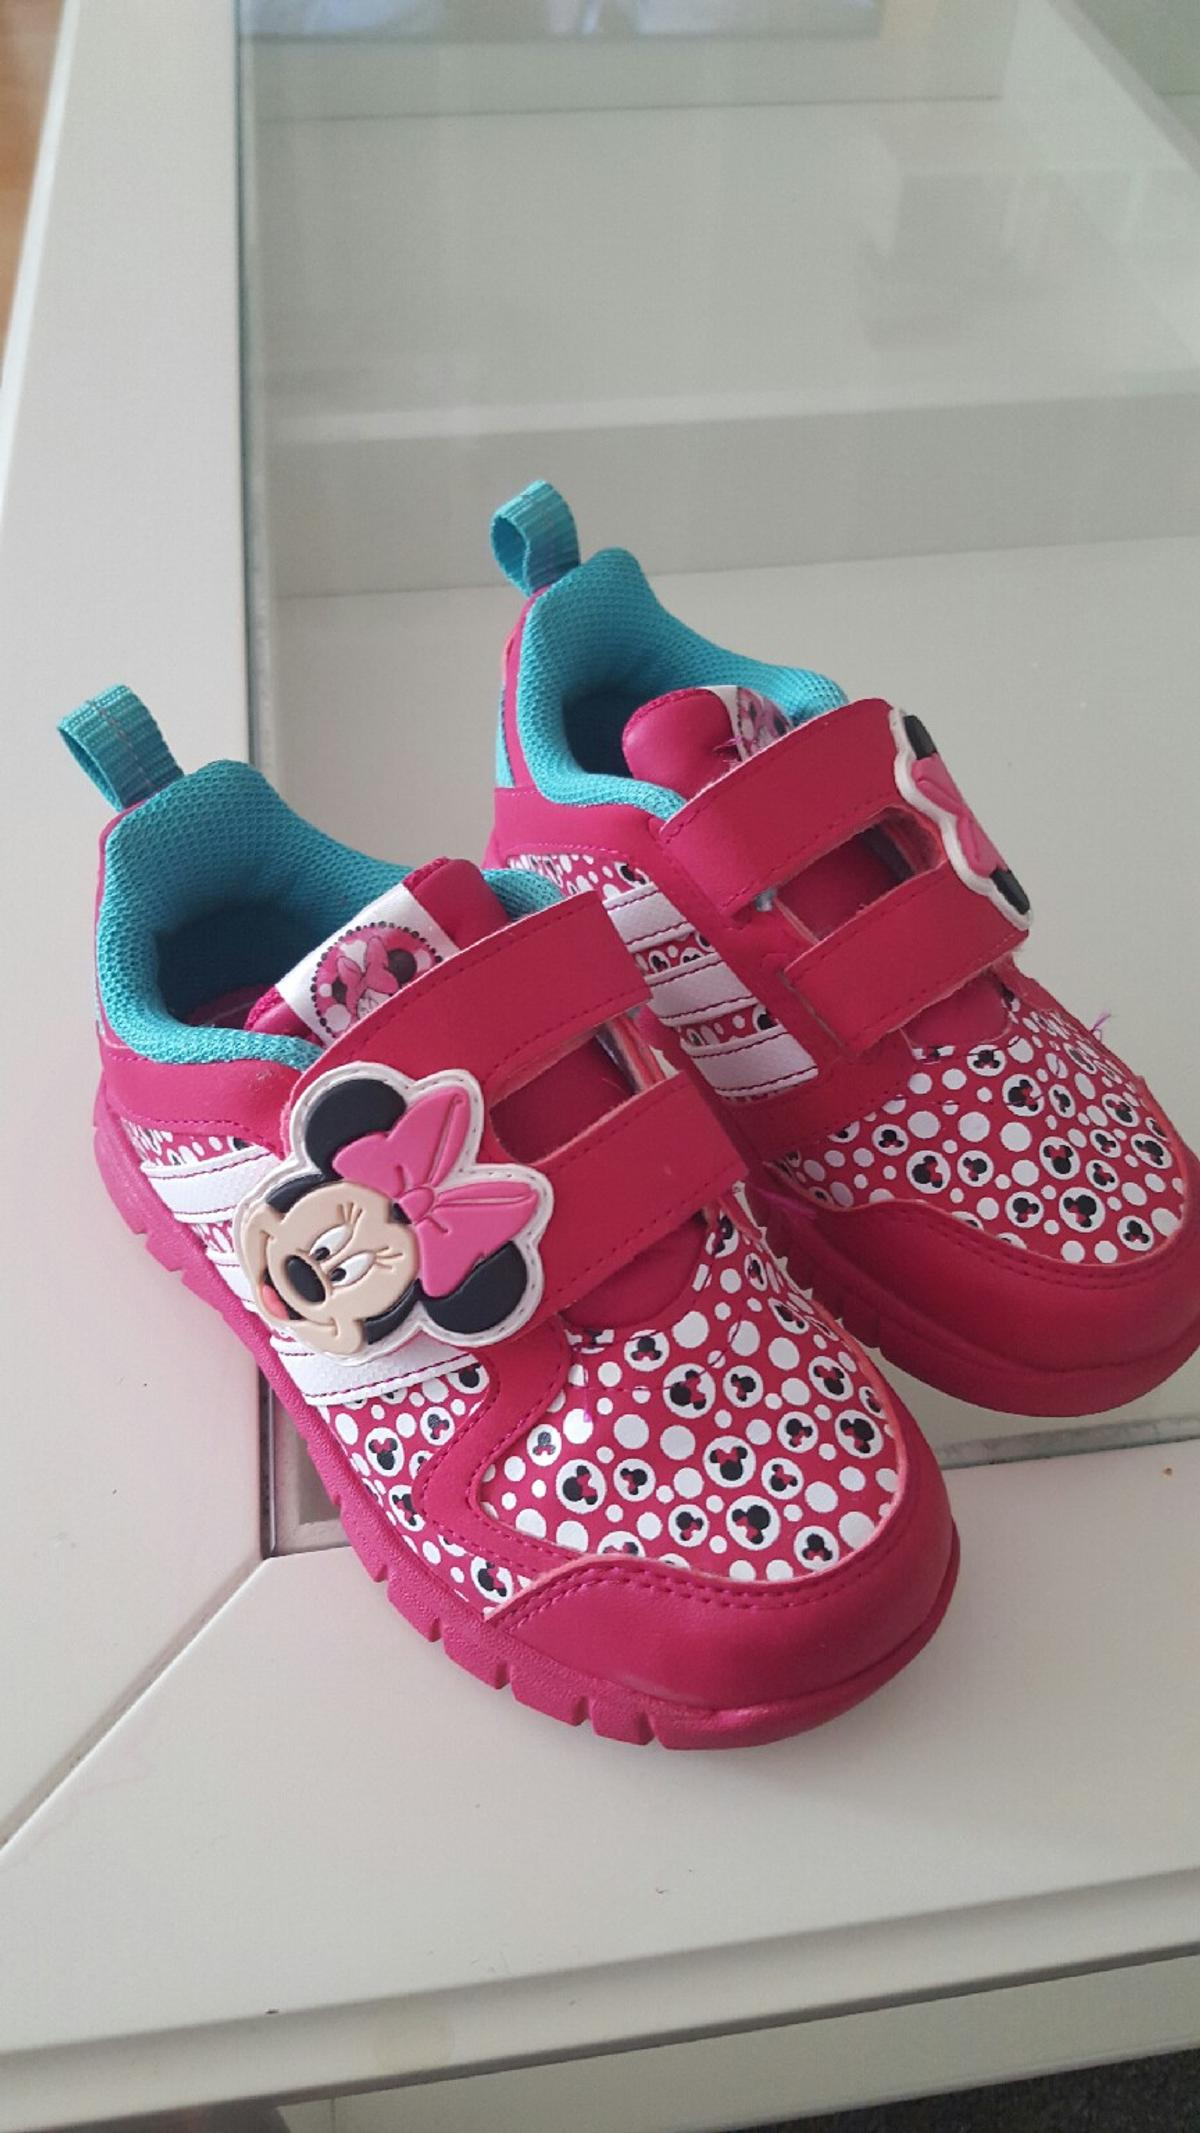 Adidas Minnie Maus Schuhe in 82110 Germering for €15.00 for